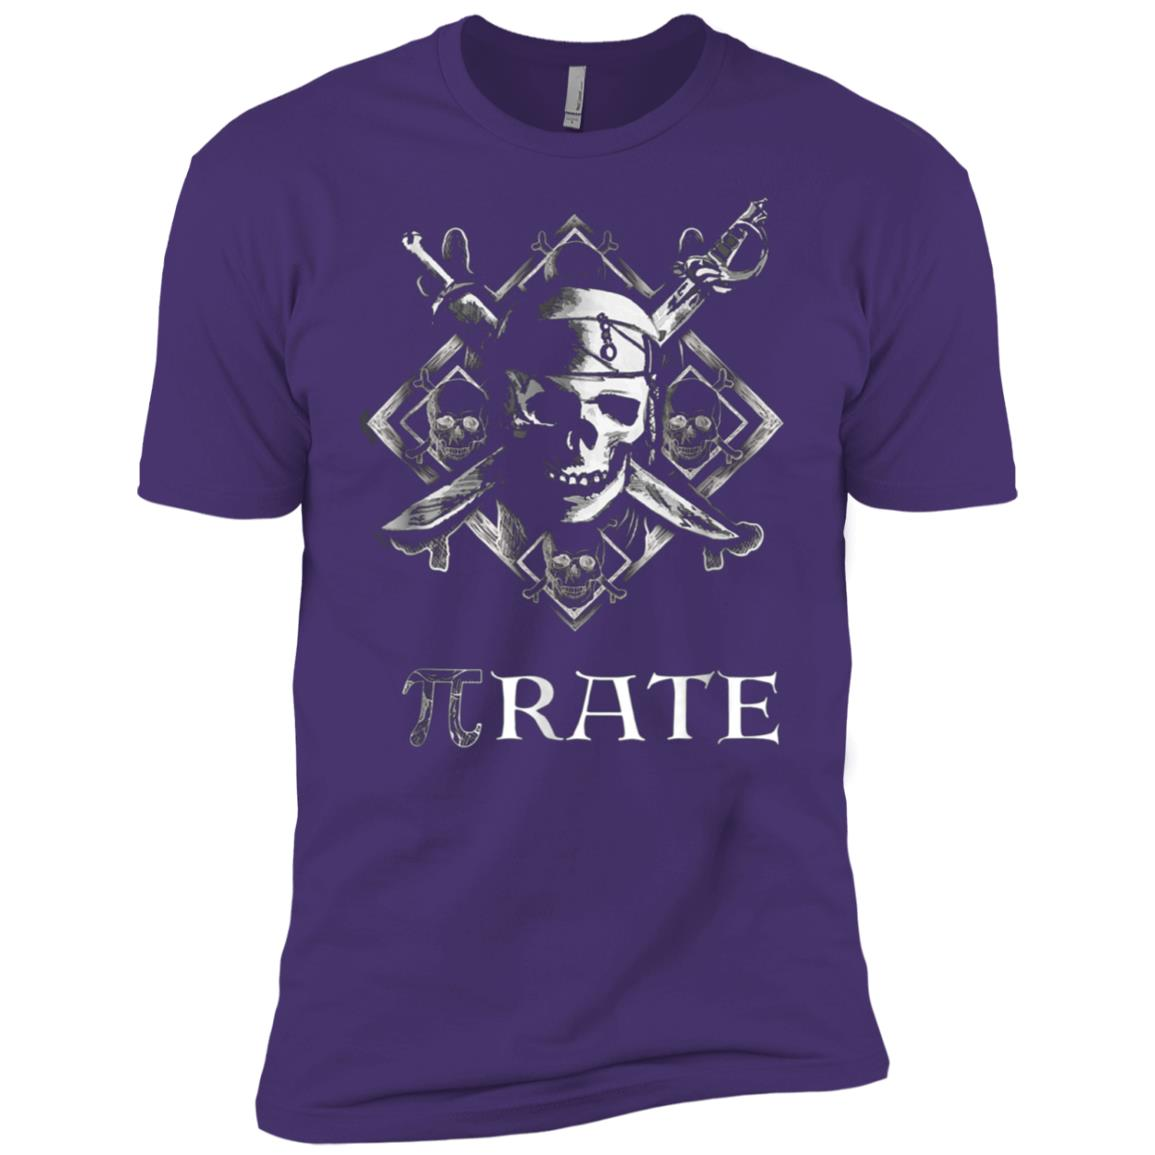 PI rate Pirate Funny Cool Math Geek Nerd Gift Men Short Sleeve T-Shirt